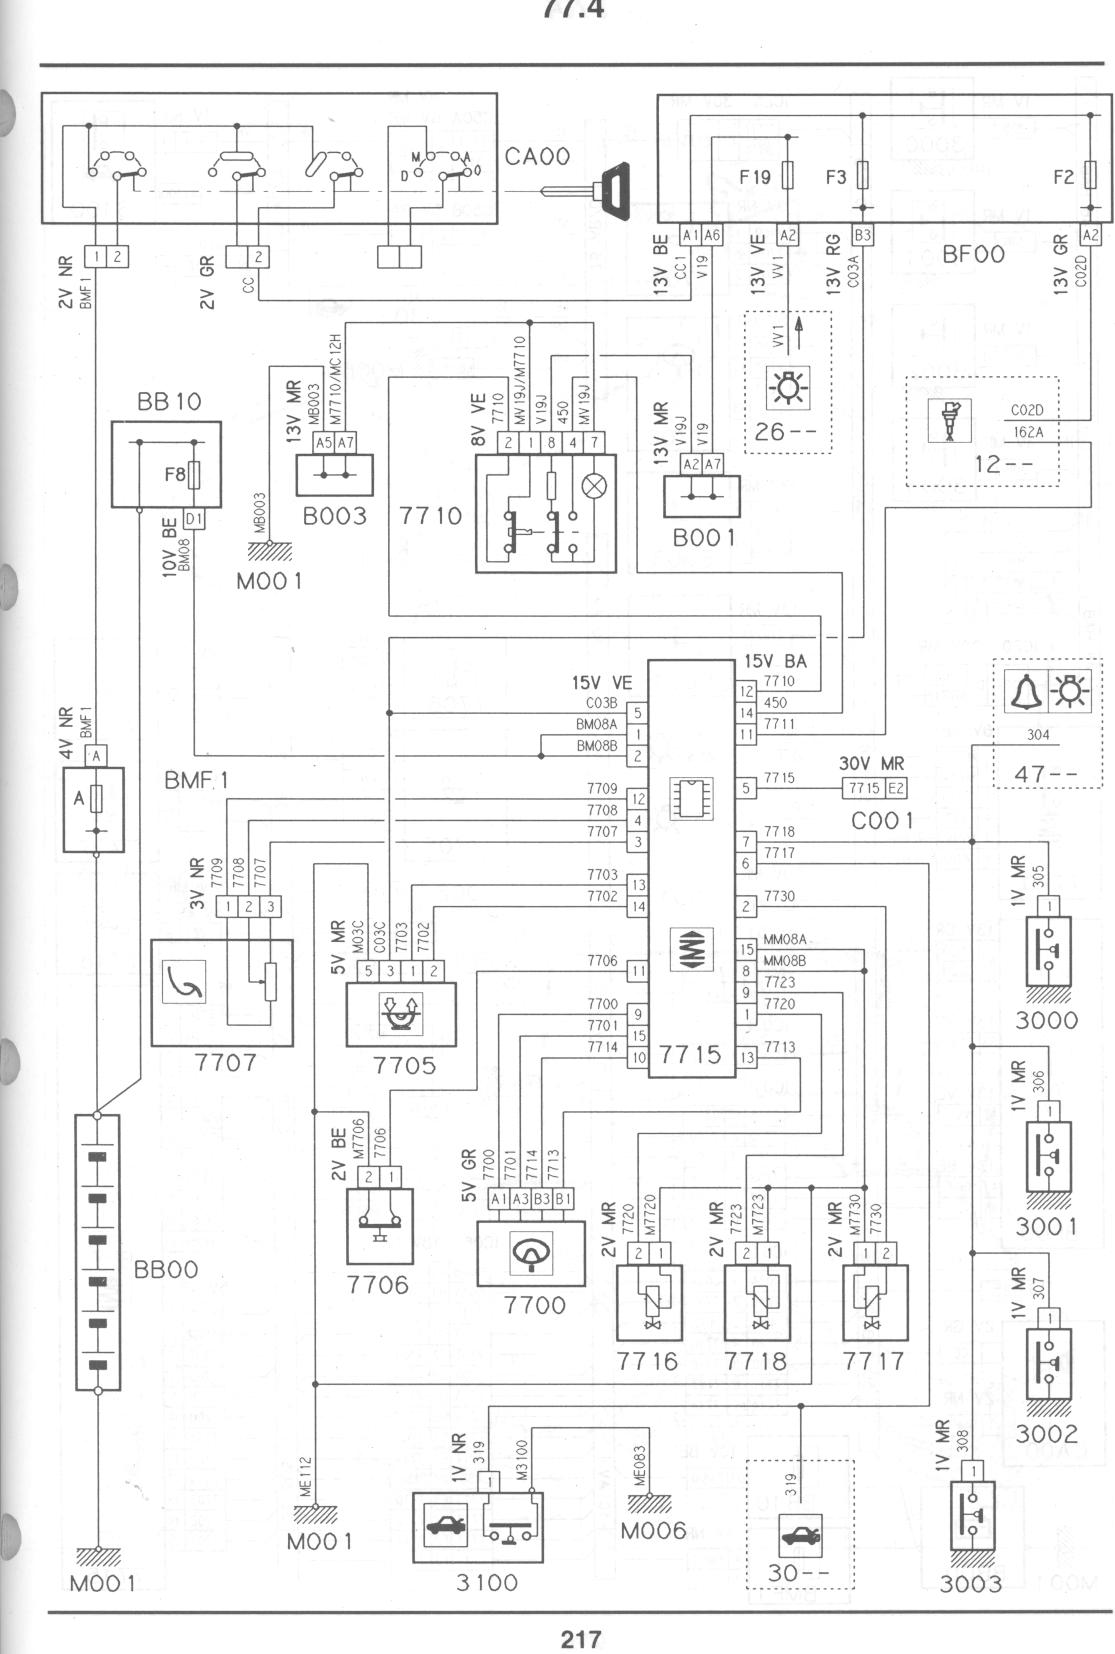 Citroen C5 Wiring Diagram Pdf Audi A6 Download Efcaviationcom